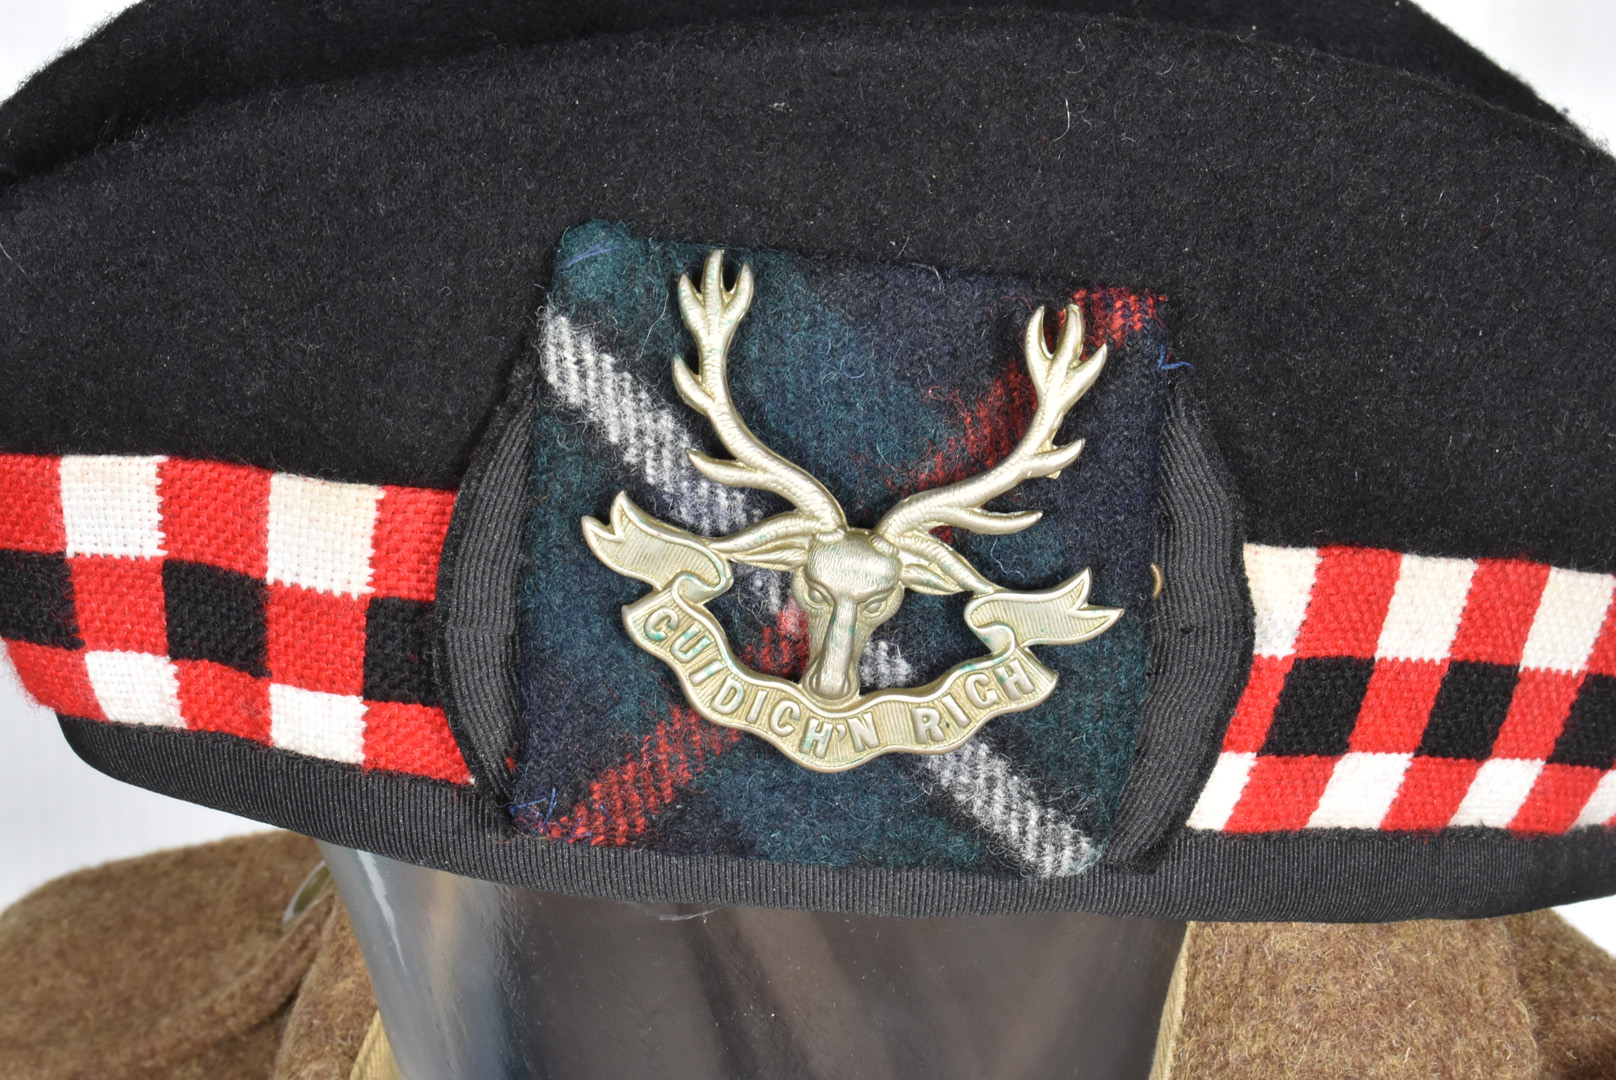 A Staff Sergeants Seaforth Highlander uniform, comprising of blouse/jacket , size 48 with Soldier of - Image 2 of 3